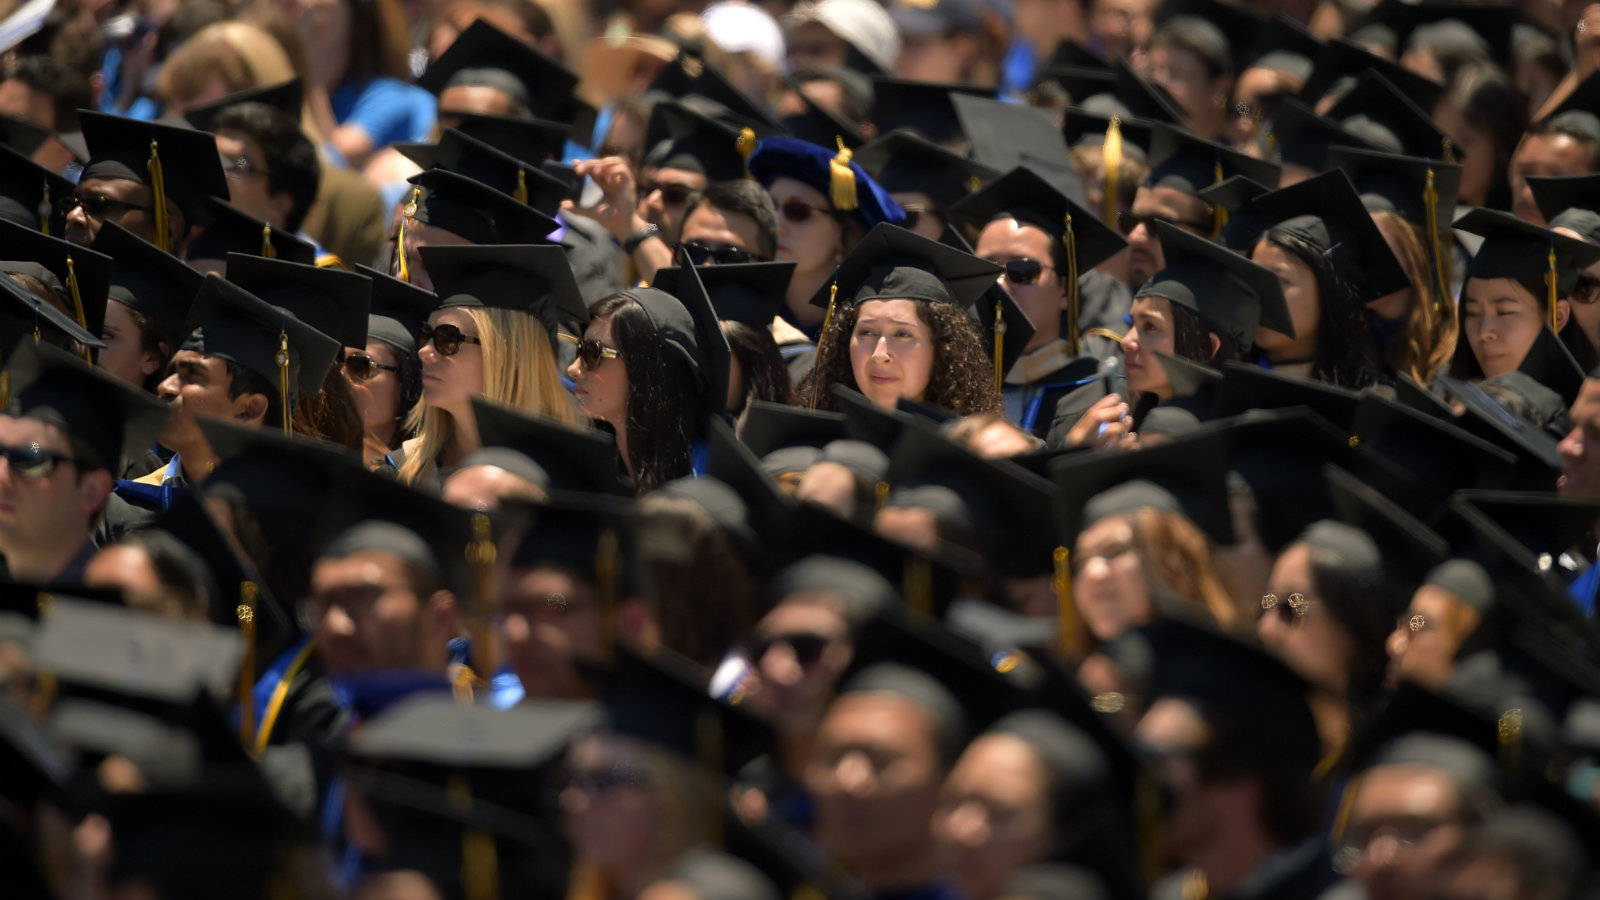 Students listen to President Barack Obama deliver the commencement address for the University of California, Irvine, Saturday, June 14, 2014, in Anaheim, Calif.